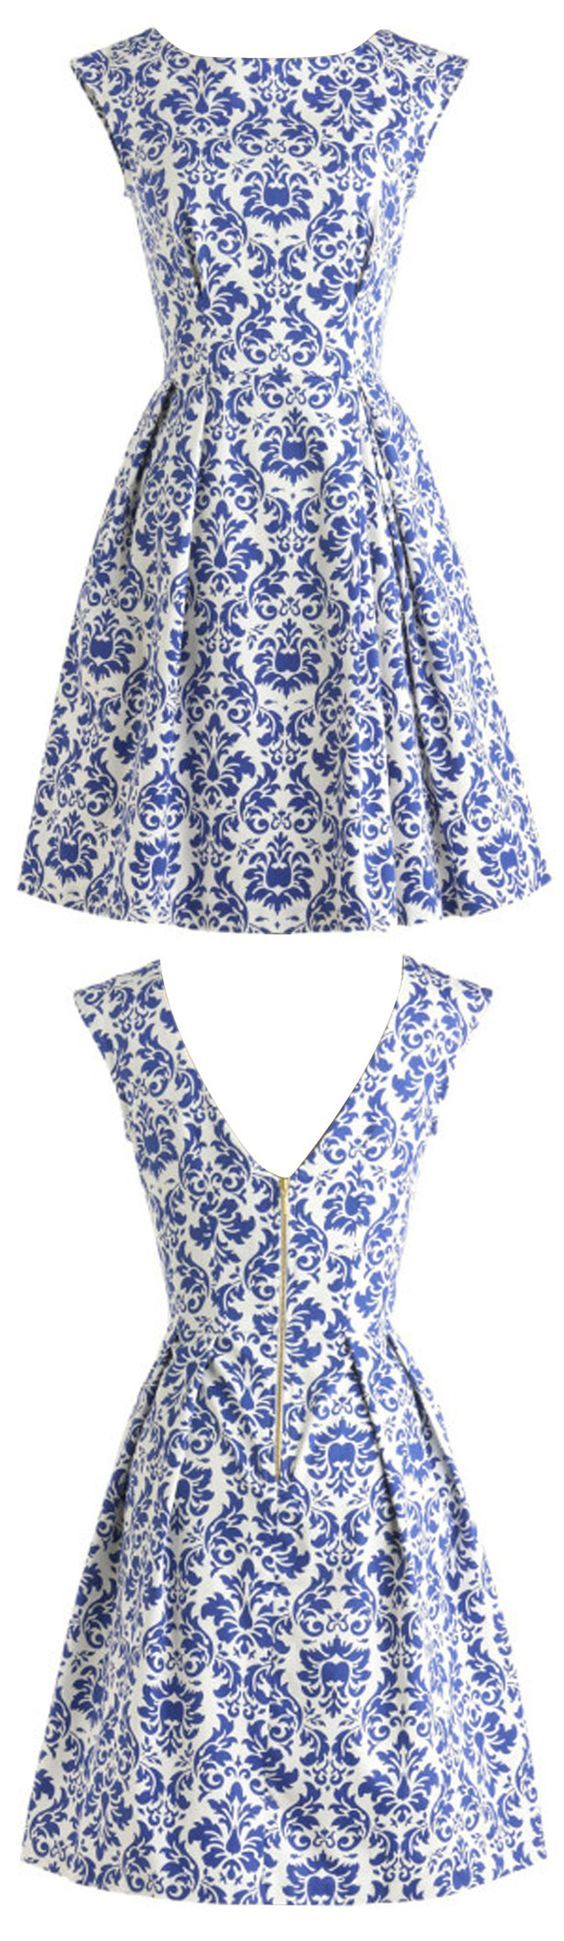 Blue And White Porcelain Inspired Skater Dress.Check more from www.oasap.com .